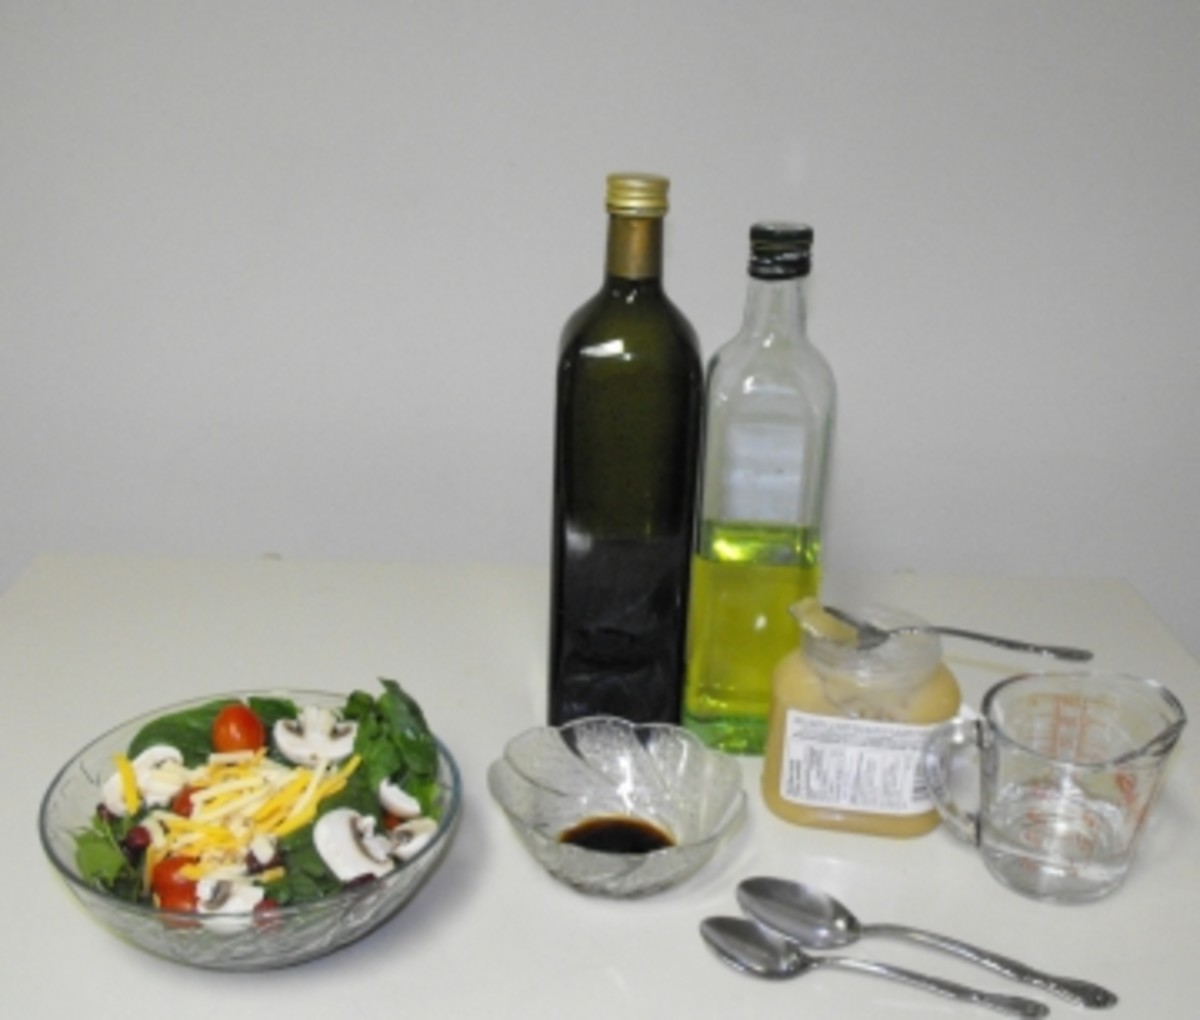 Homemade Oil and Balsamic Vinegar Salad Dressing